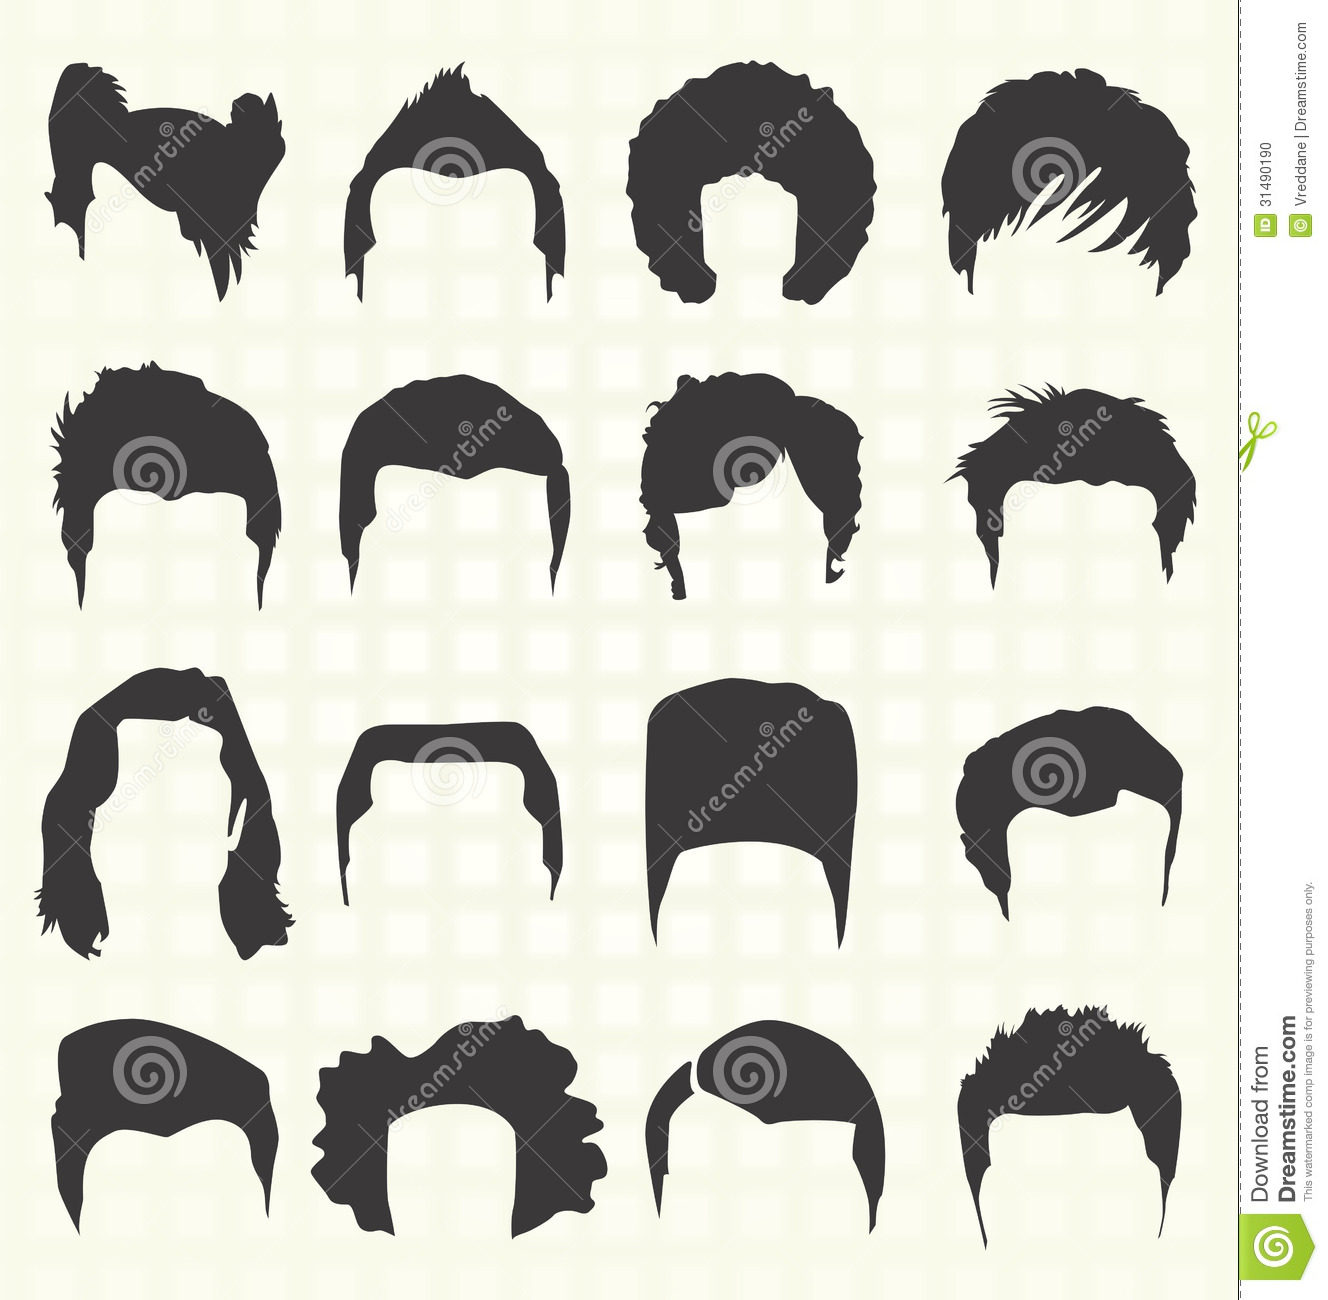 Hairstyle Vector : More similar stock images of ` Vector Set: Hair Style Silhouettes `